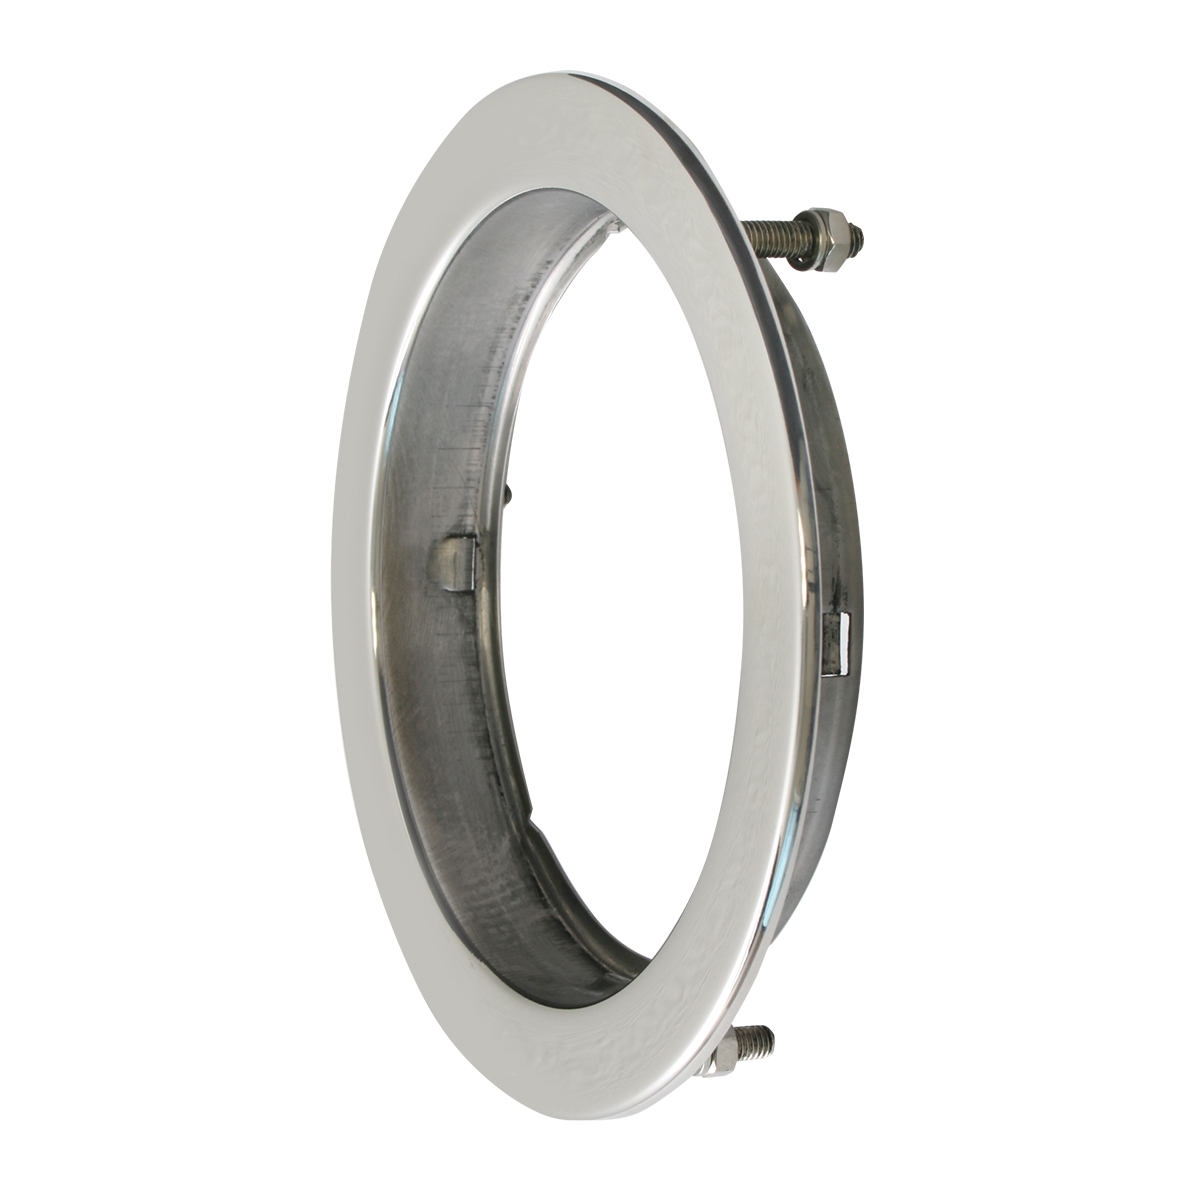 "Flange Mount Bezel with Hidden Studs for 4"" Round Light"